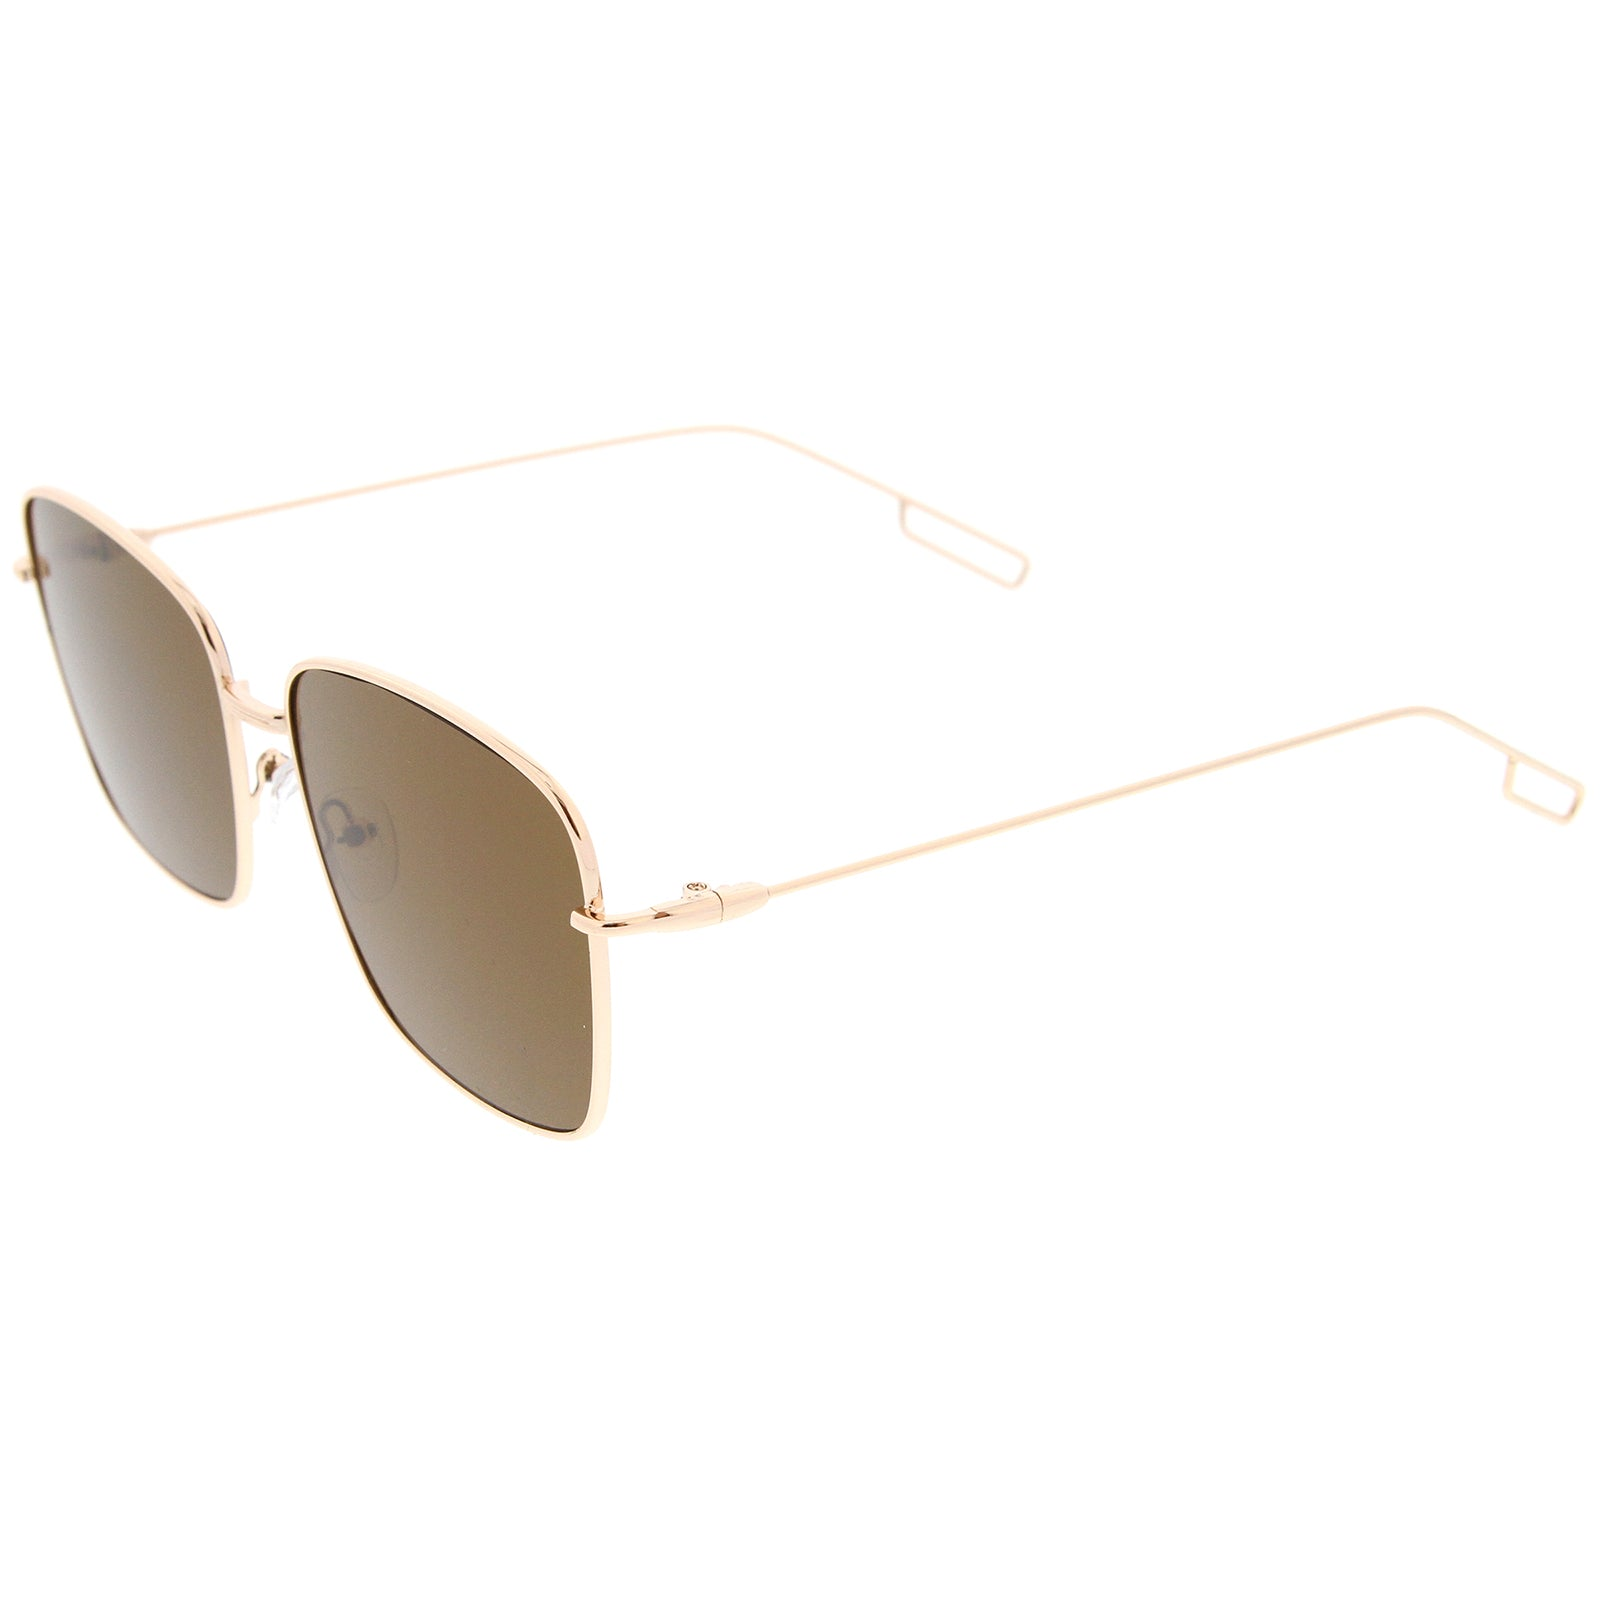 Minimal Wire Metal Frame Hook Temple Flat Lens Square Sunglasses 58mm - sunglass.la - 3